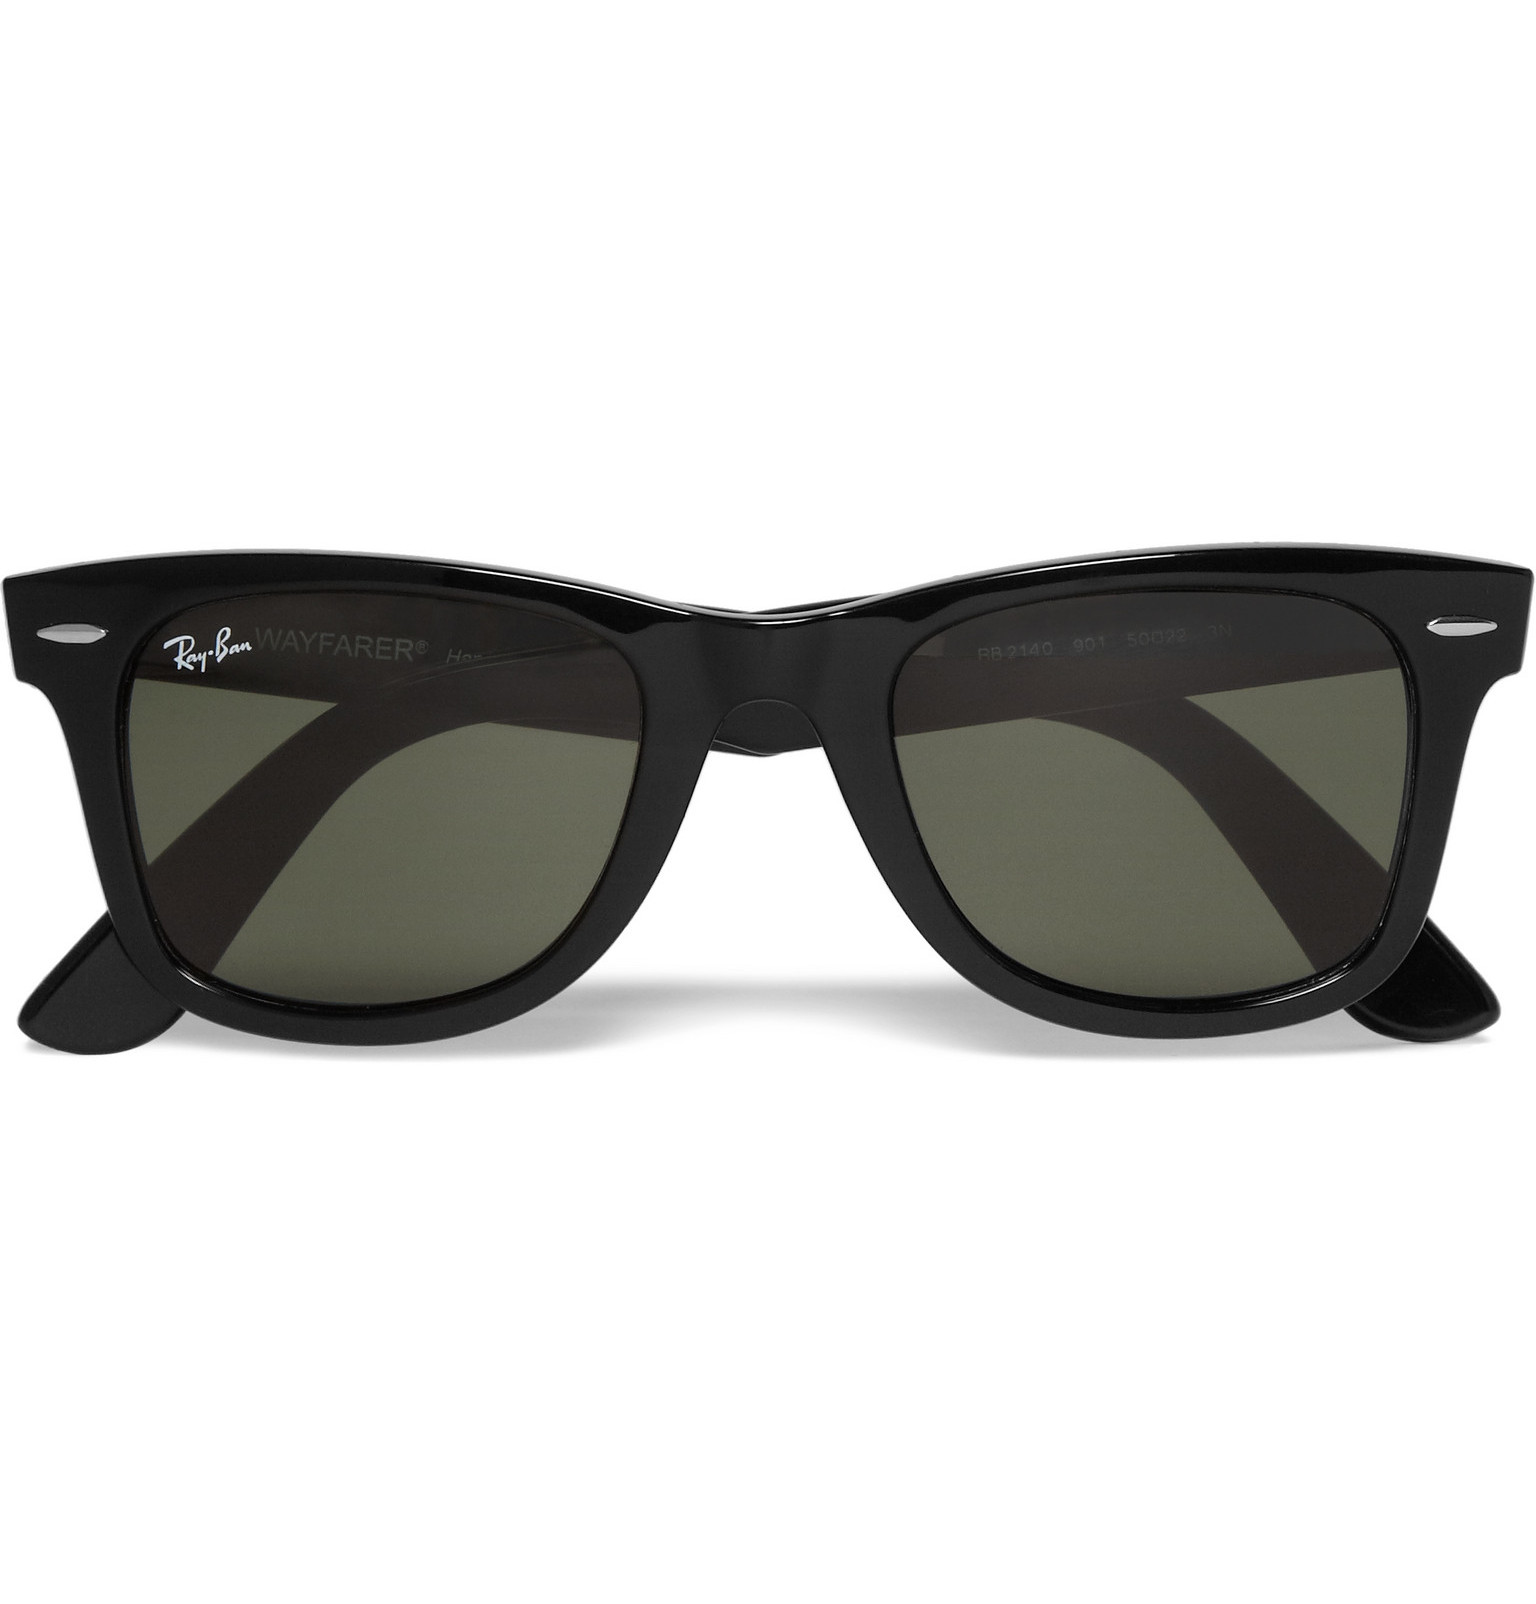 Black Ray Ban Sunglasses  ray banoriginal wayfarer acetate sunglasses